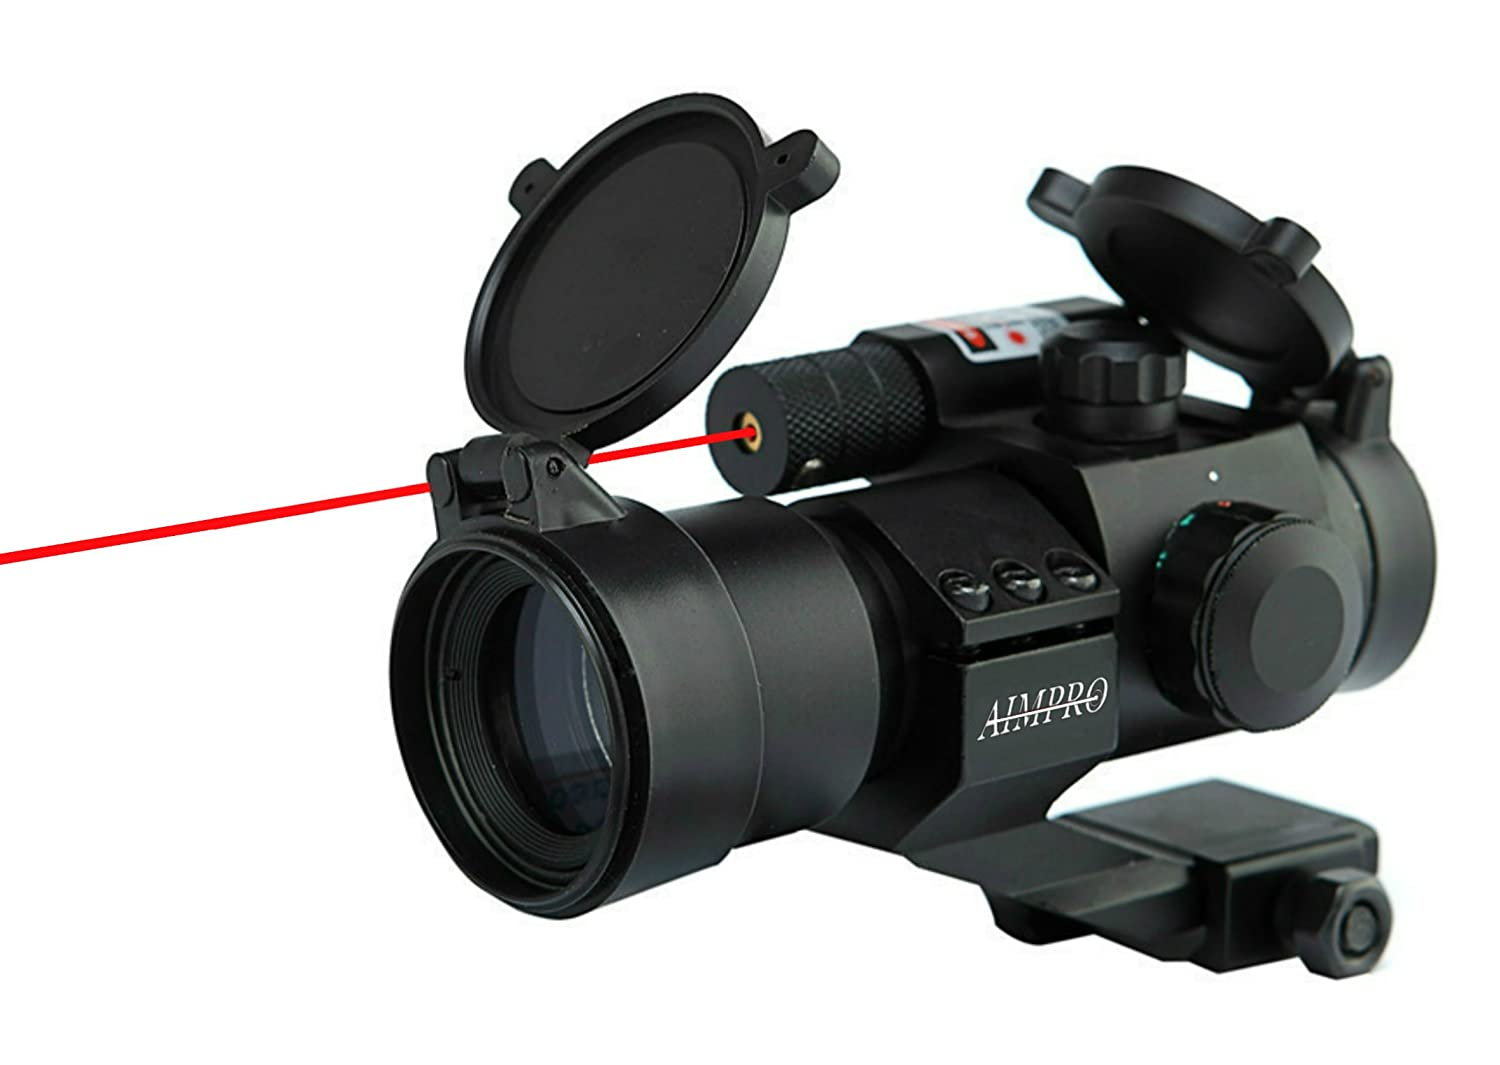 Aimpro Red/Green Dot Sight with Built-in Laser for Rifle or Shotgun